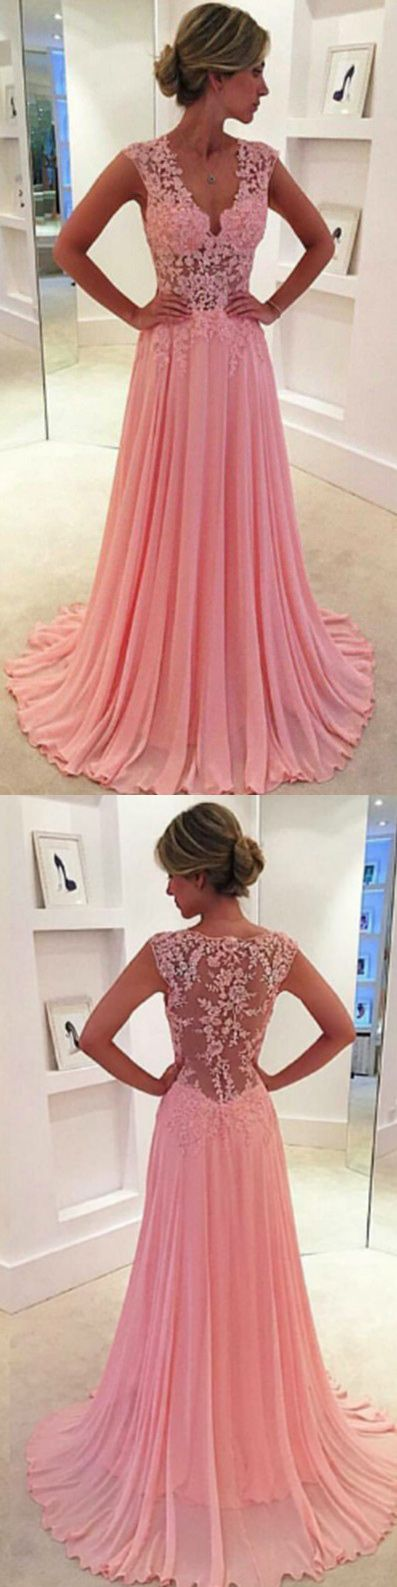 pink chiffon long prom dresses, long prom dresses for women, 2017 prom dresses cheap, new arrival prom dresses long, women's prom dresses, v-neck women's long prom dresses